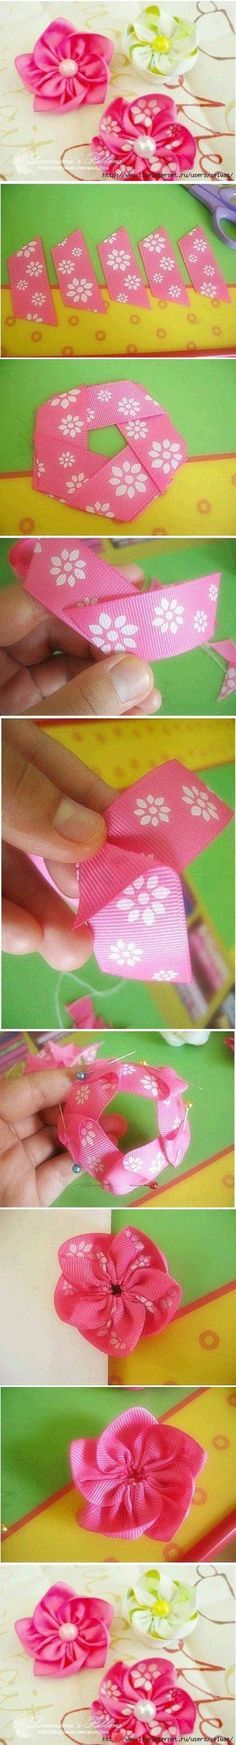 5 ribbon /( grosgrain etc.)strips pinned and sewn